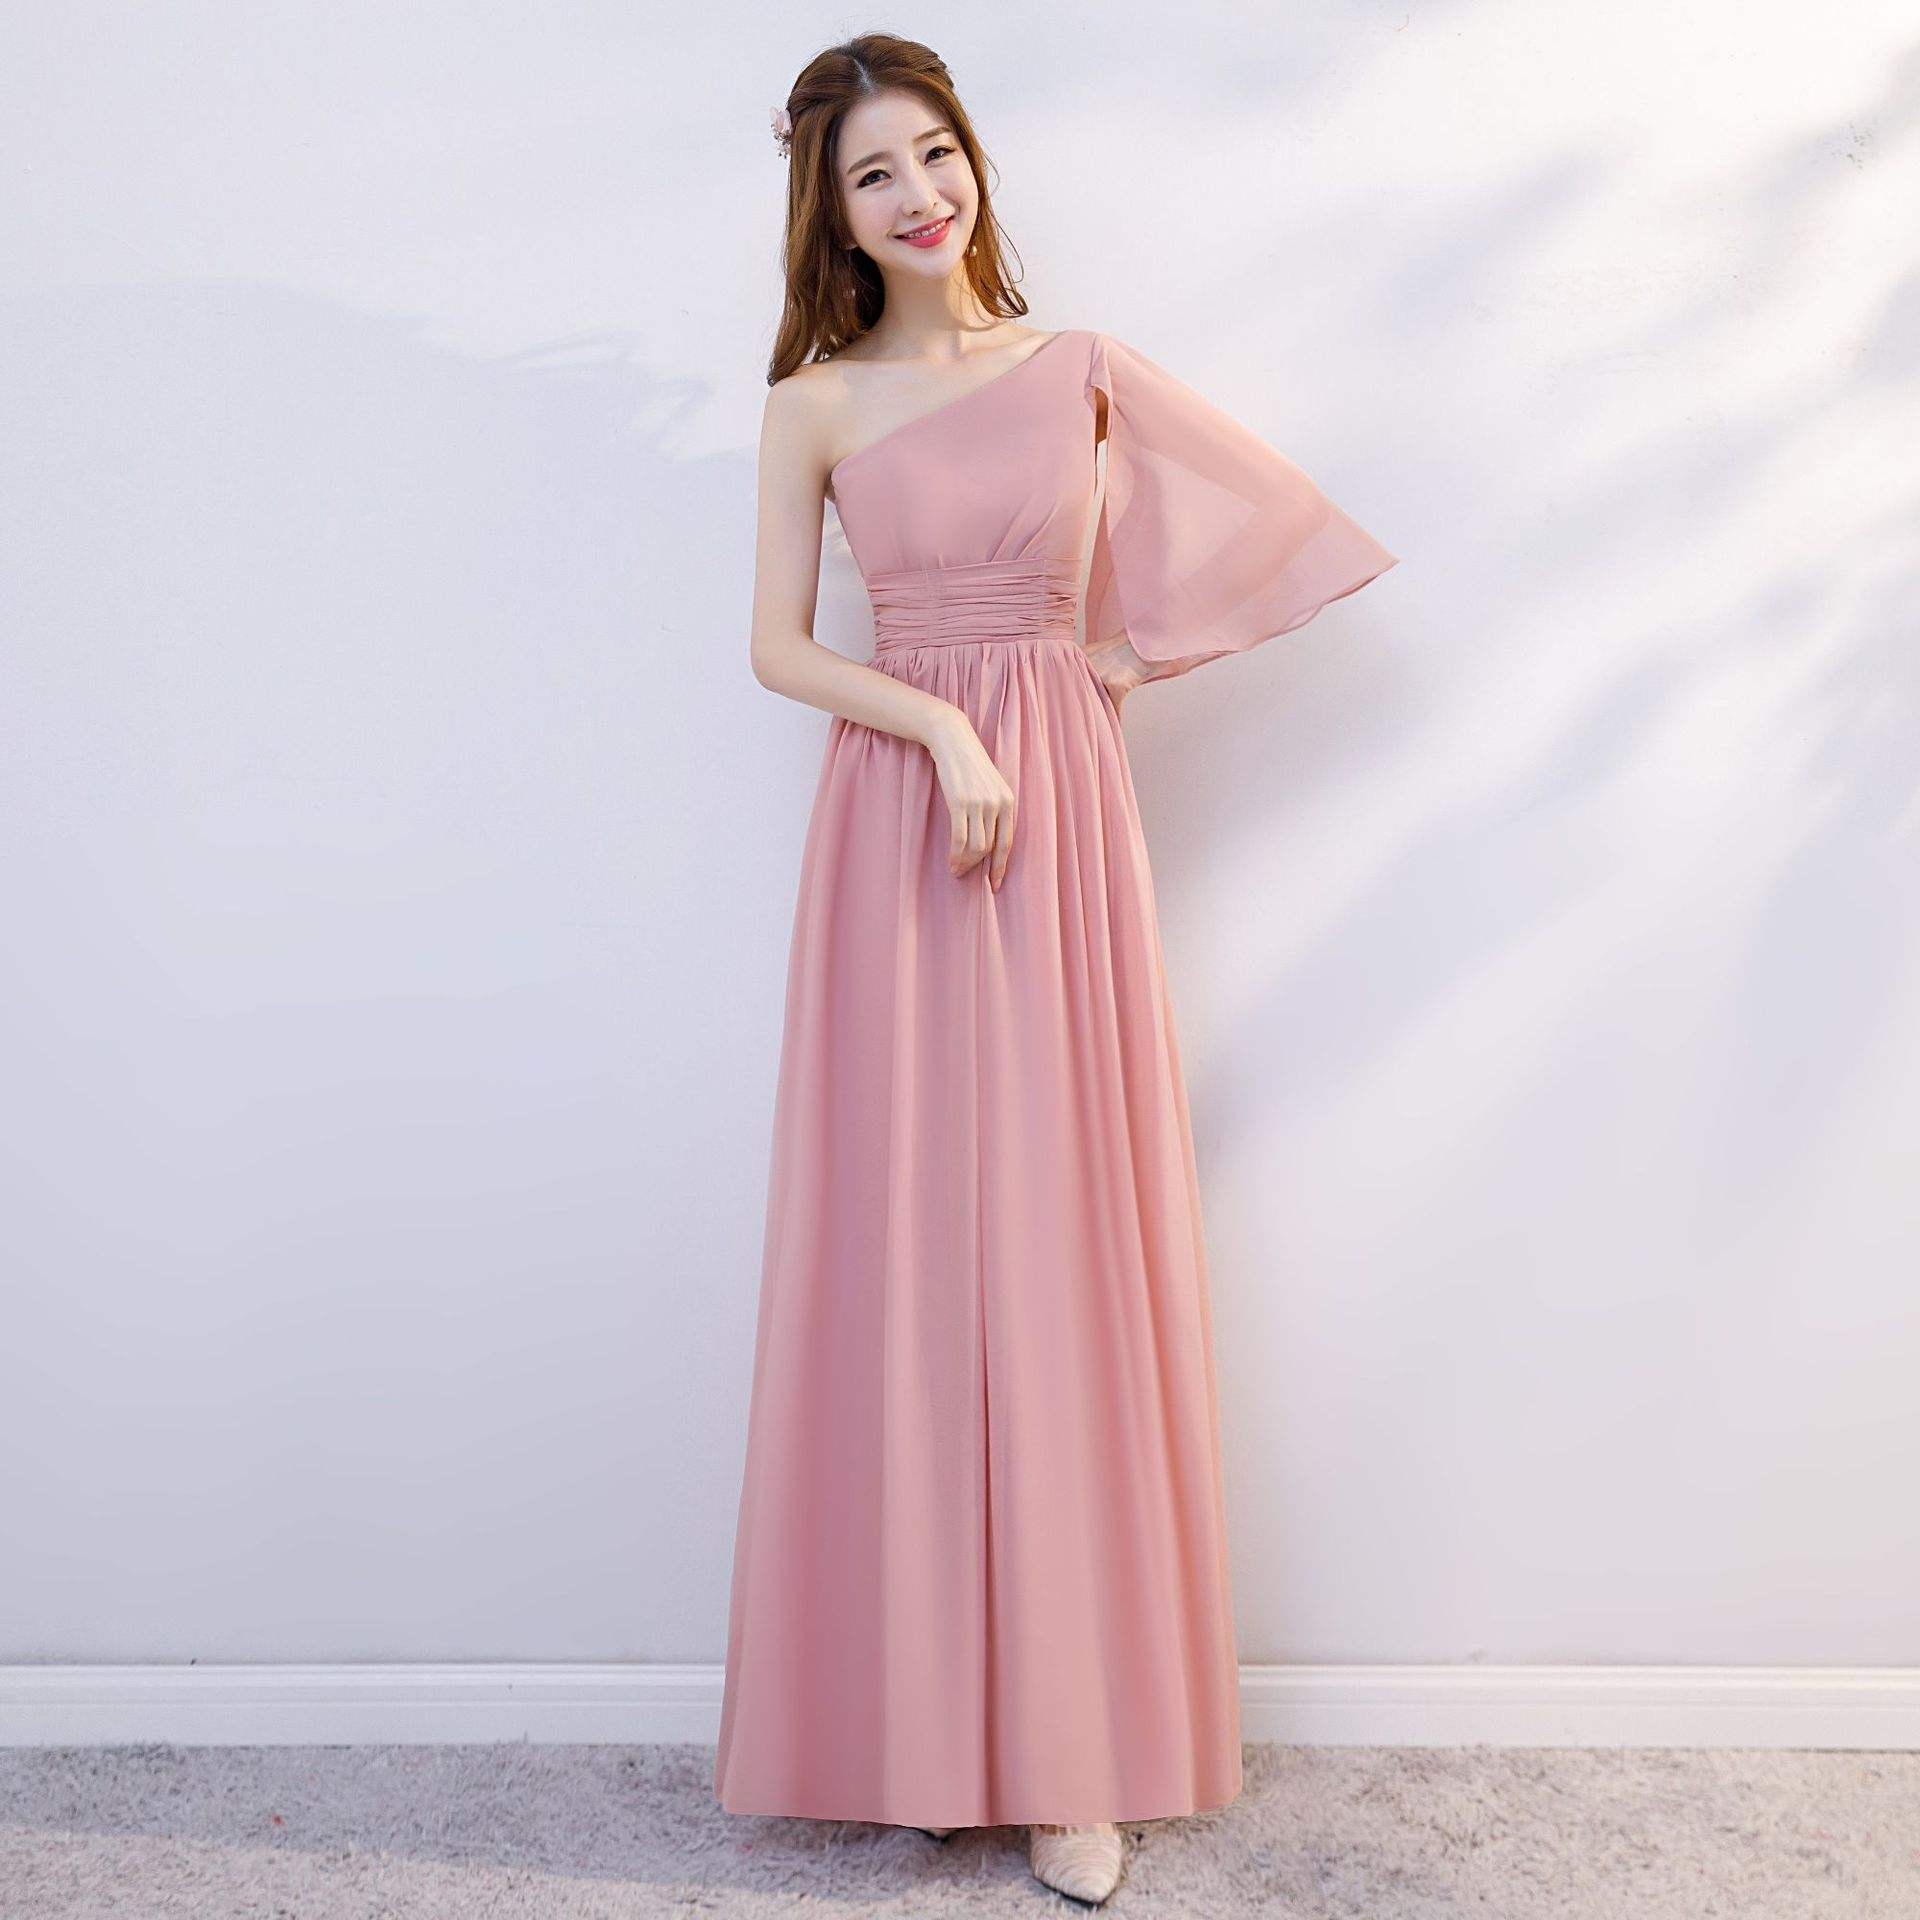 Bridesmaid Dresses Wholesale Dinner Dresses Long Ball Gown Wedding Party Pink Bridesmaid Dresses For Ladies